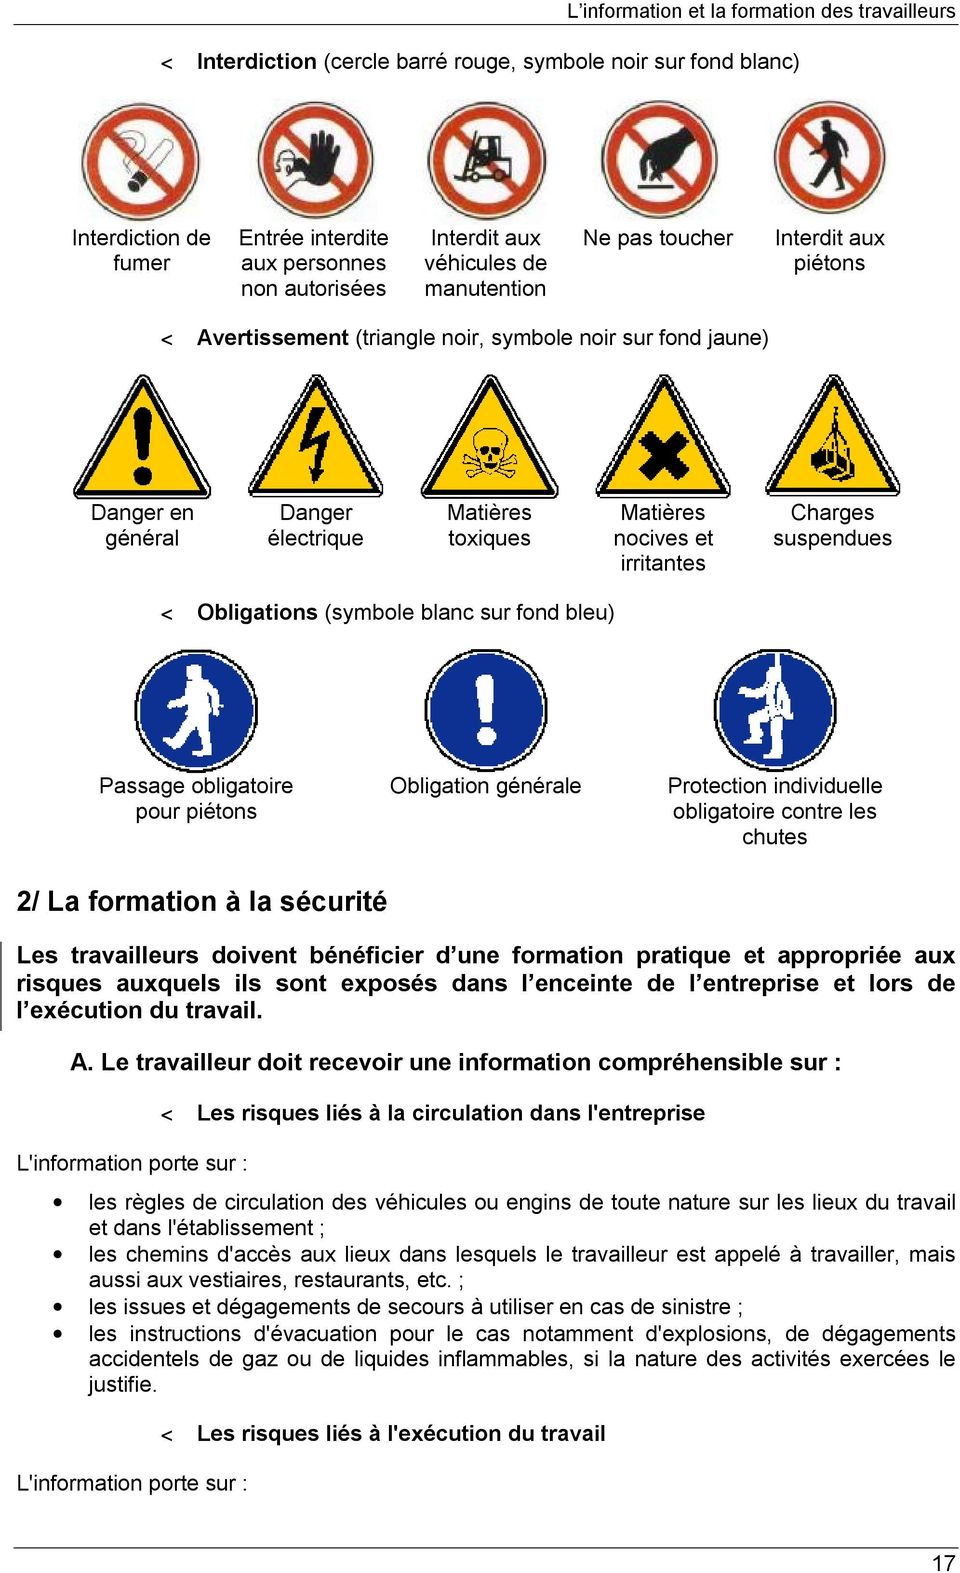 irritantes Charges suspendues < Obligations (symbole blanc sur fond bleu) Passage obligatoire pour piétons 2/ La formation à la sécurité Obligation générale Protection individuelle obligatoire contre